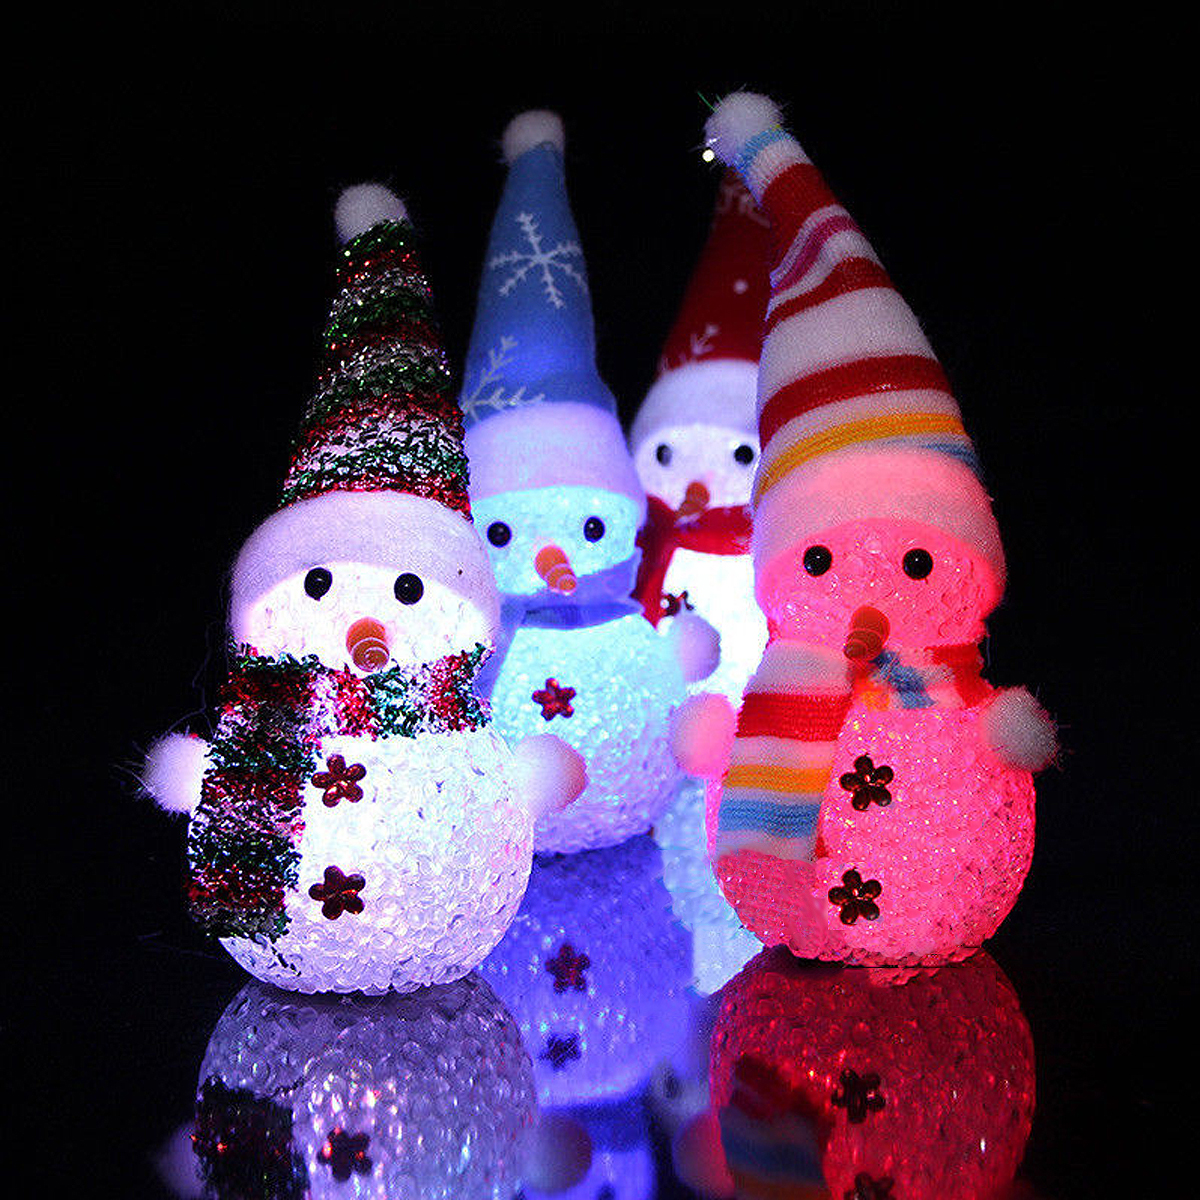 Gift LED Snowman Santa Claus Ornament Christmas Tree Light Hanging Decor HG Light Snowman Christmas Lights Colorful christmas snowman pattern door stickers